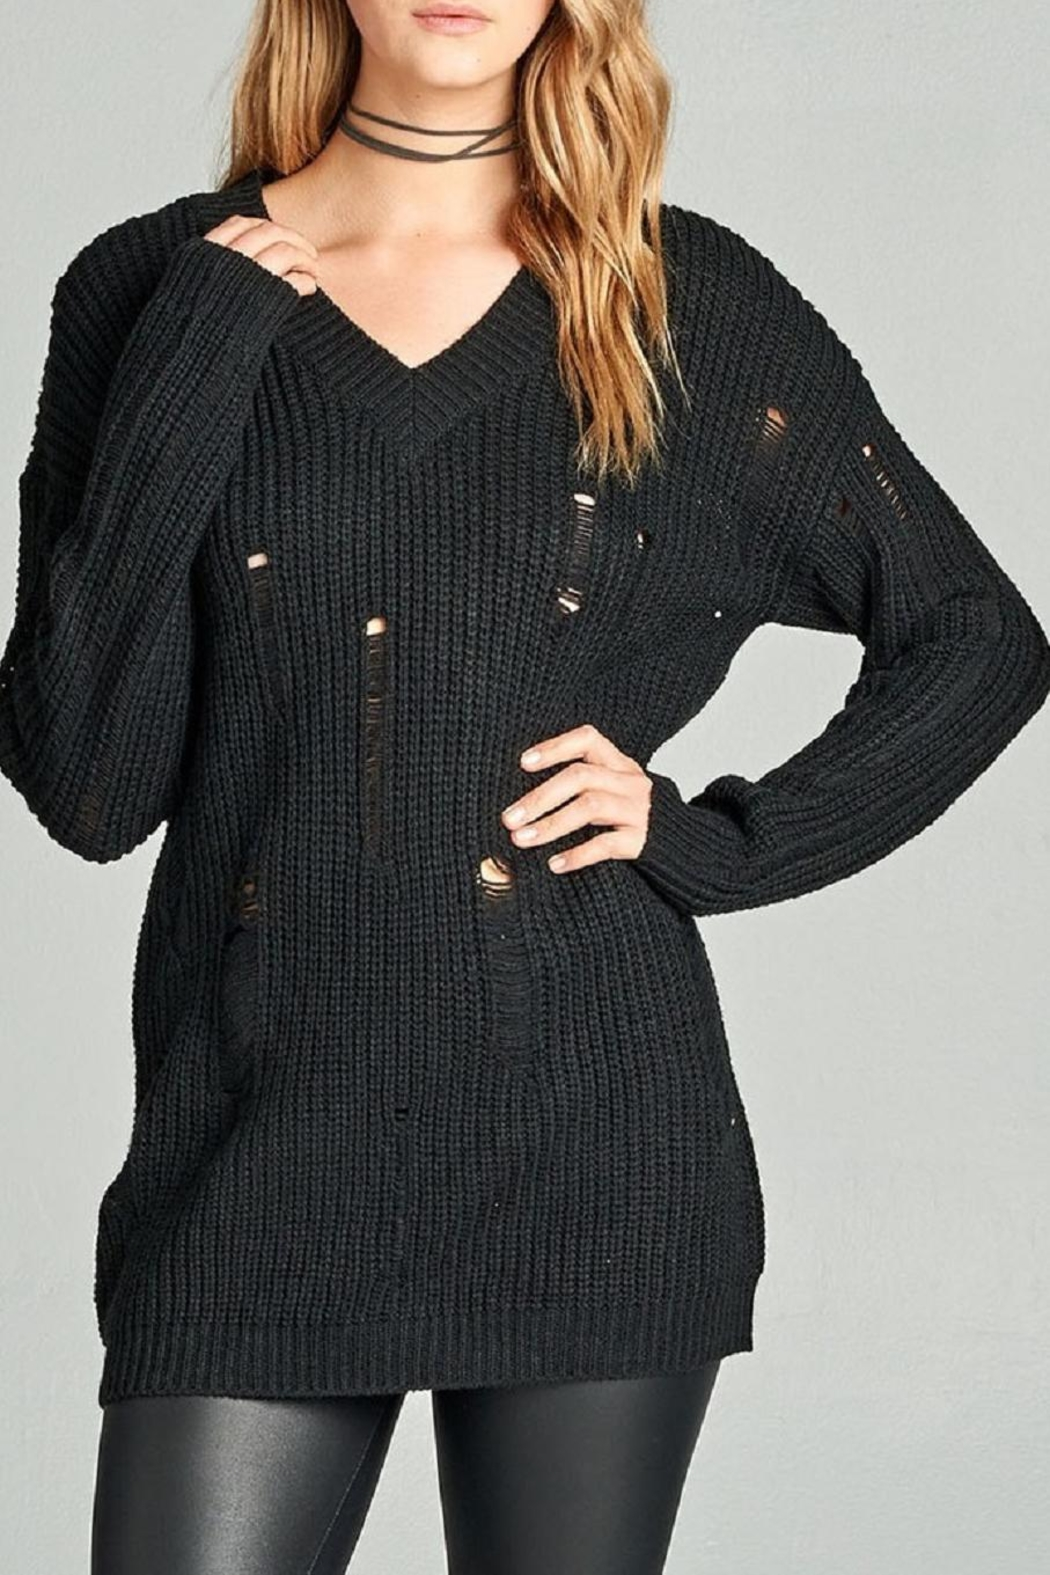 abfe9c8eff6 Distressed Black Sweater Sweater has distressed sleeves and the